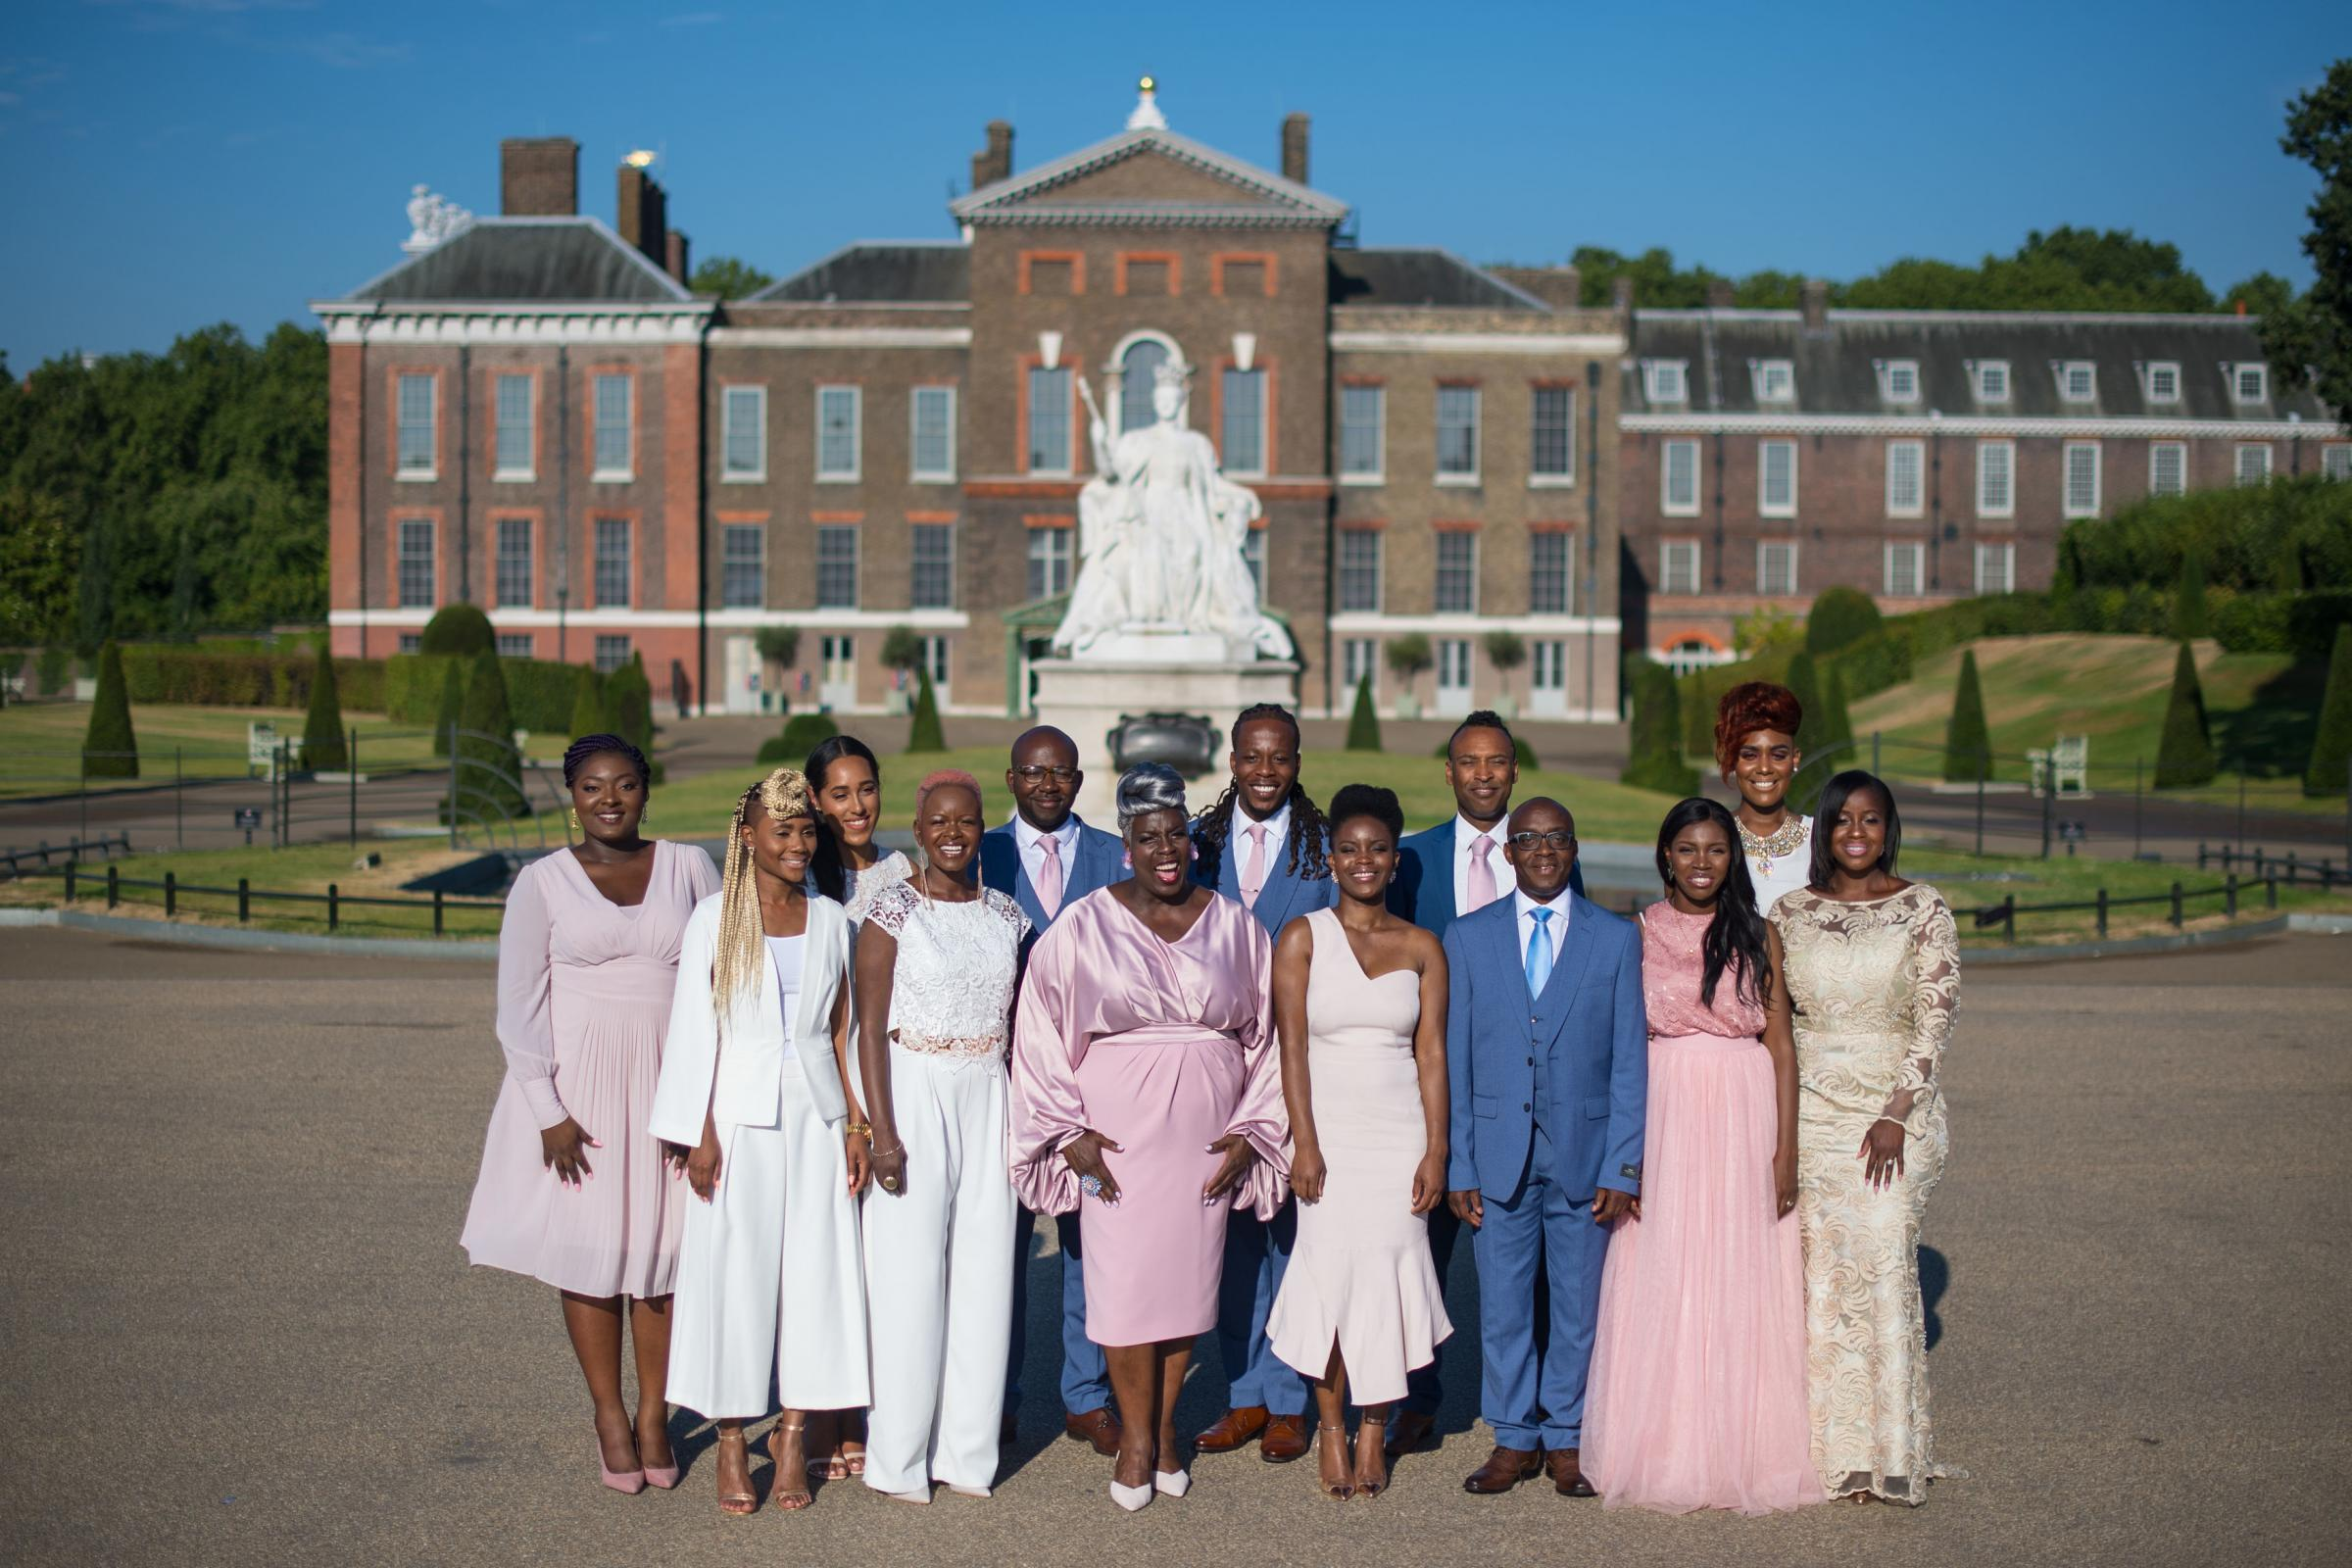 File photo dated 24/07/2018 of Conductor Karen Gibson (centre left) and members of the Kingdom Choir, who performed Stand By Me at the royal wedding, and who have announced a tour of the UK. PRESS ASSOCIATION Photo. Issue date: Thursday September 27, 2018